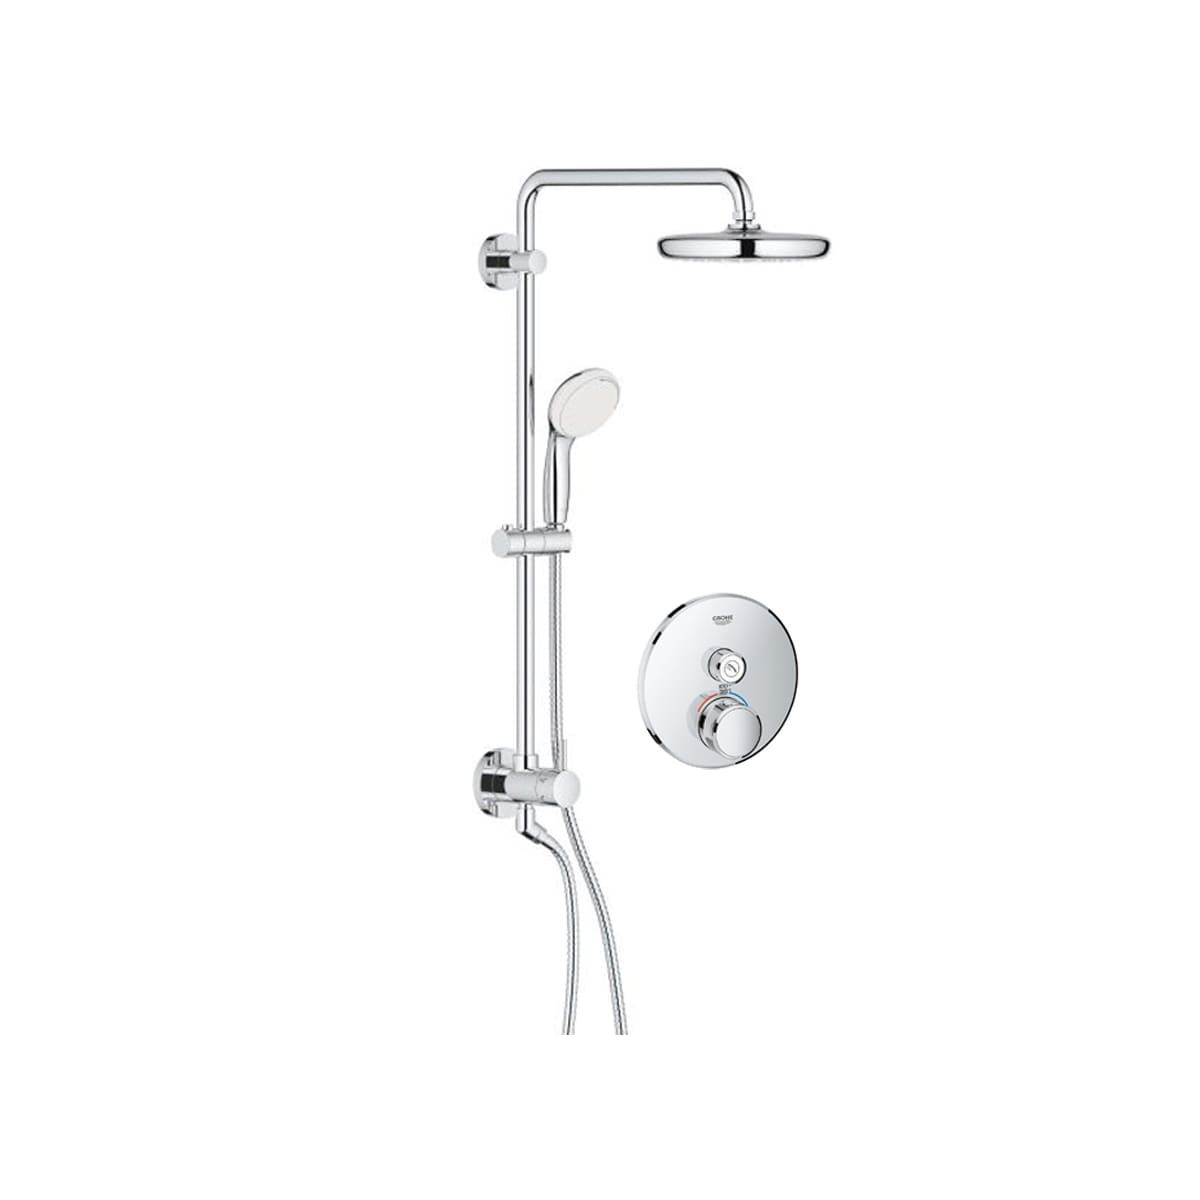 Grohe Gss Retrofit 8 Grohe Shower Systems Chrome